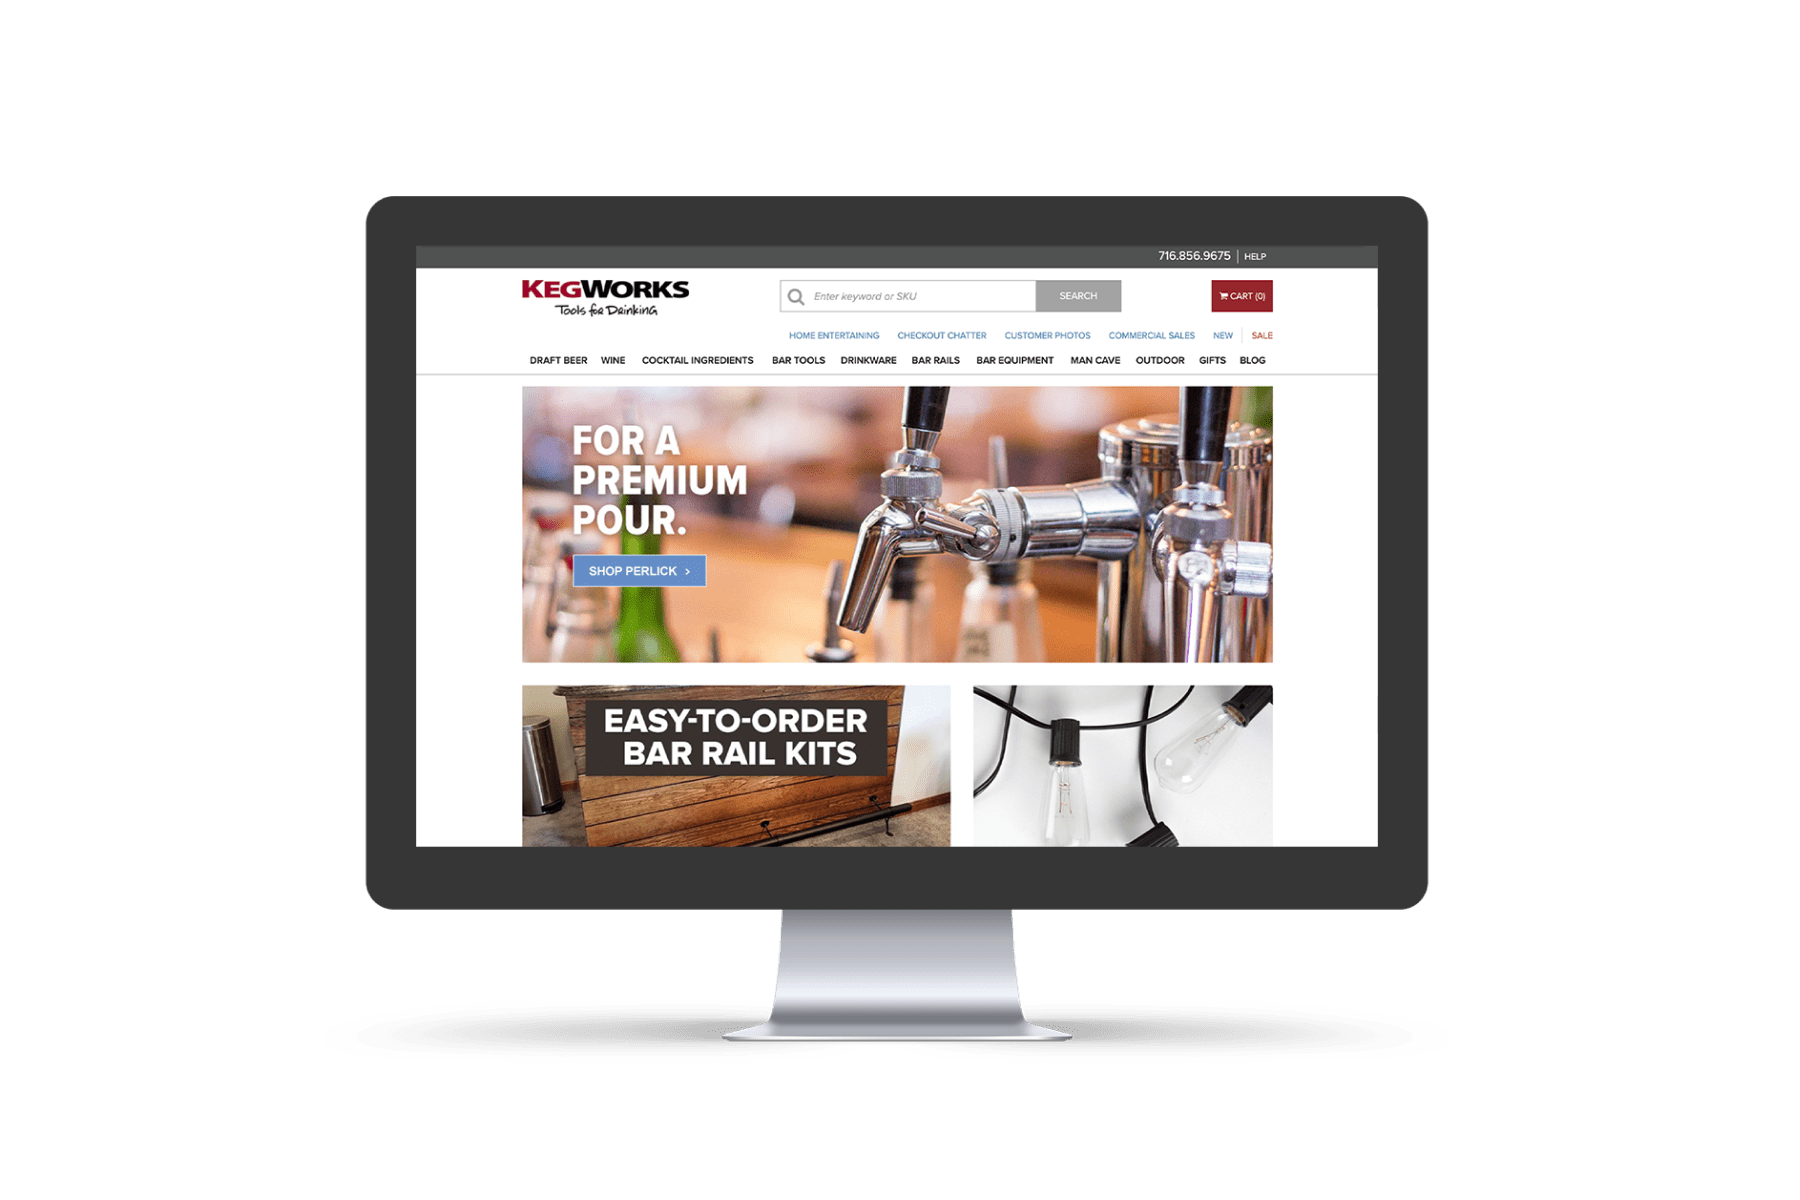 KegWorks Website Before Working With Groove Commerce